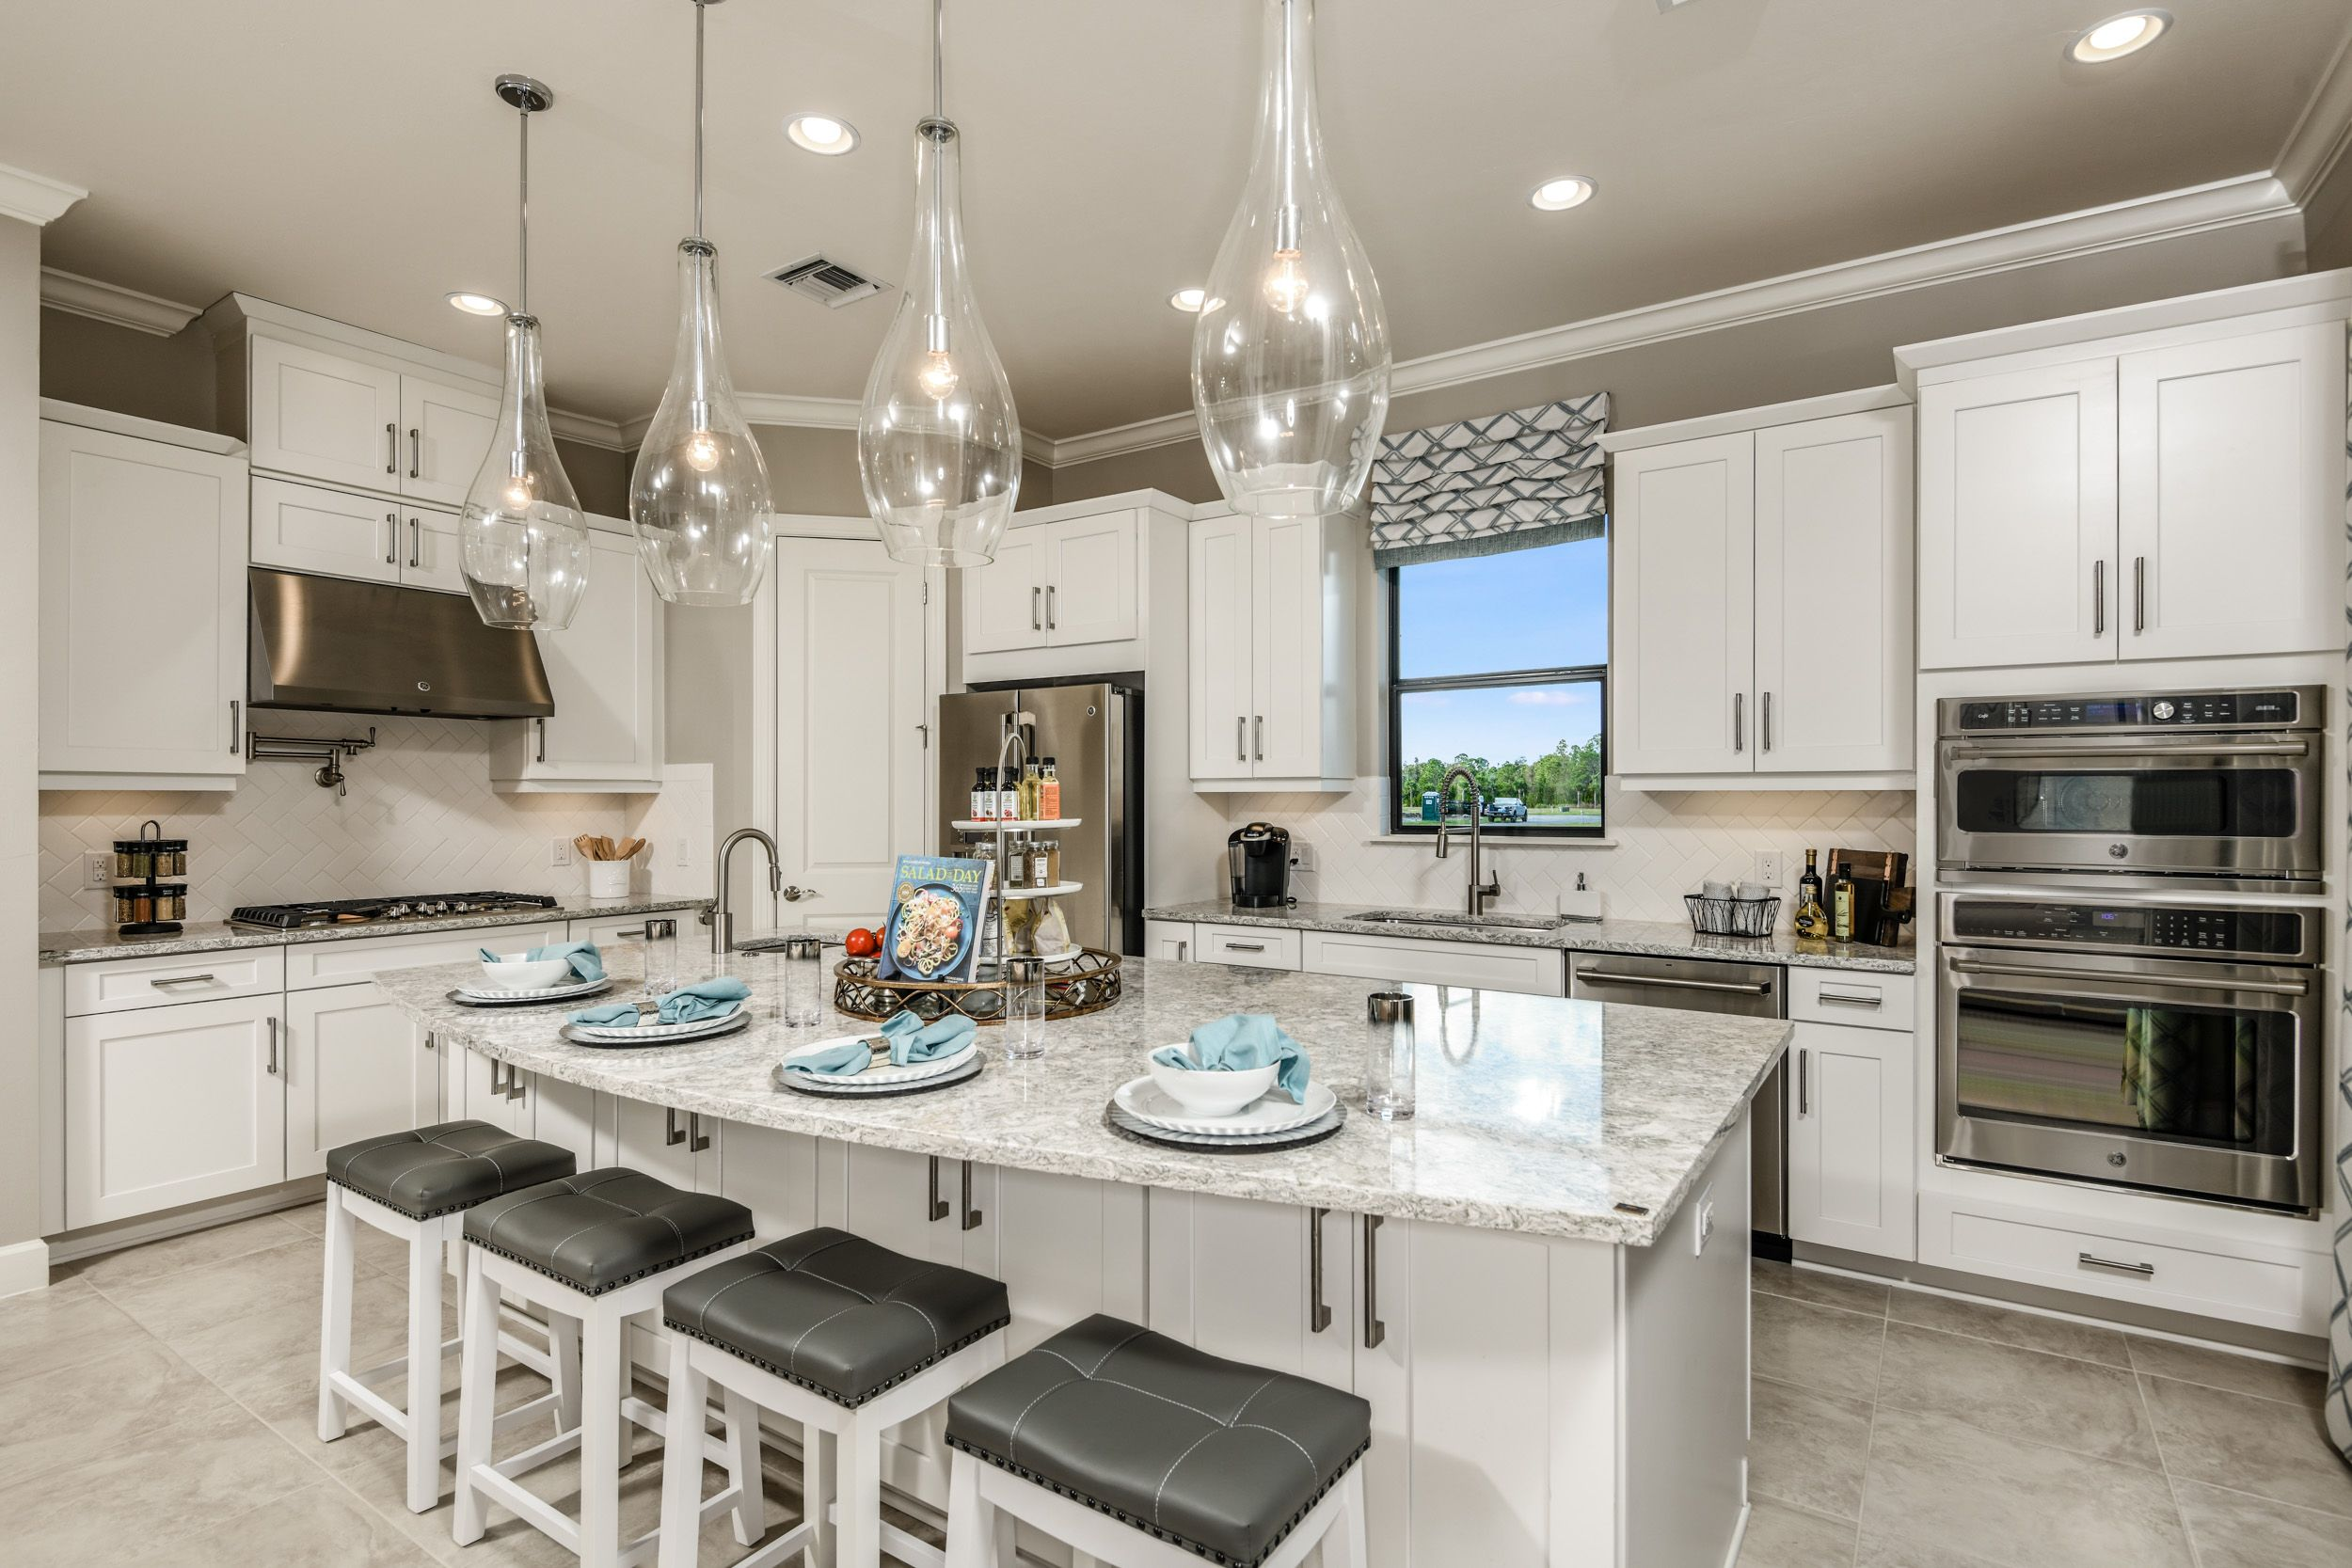 Culinary Bliss Kitchen Cook Newhome Fortmyers Sunshinestate Floridaliving Estero Kitchen Florida Living